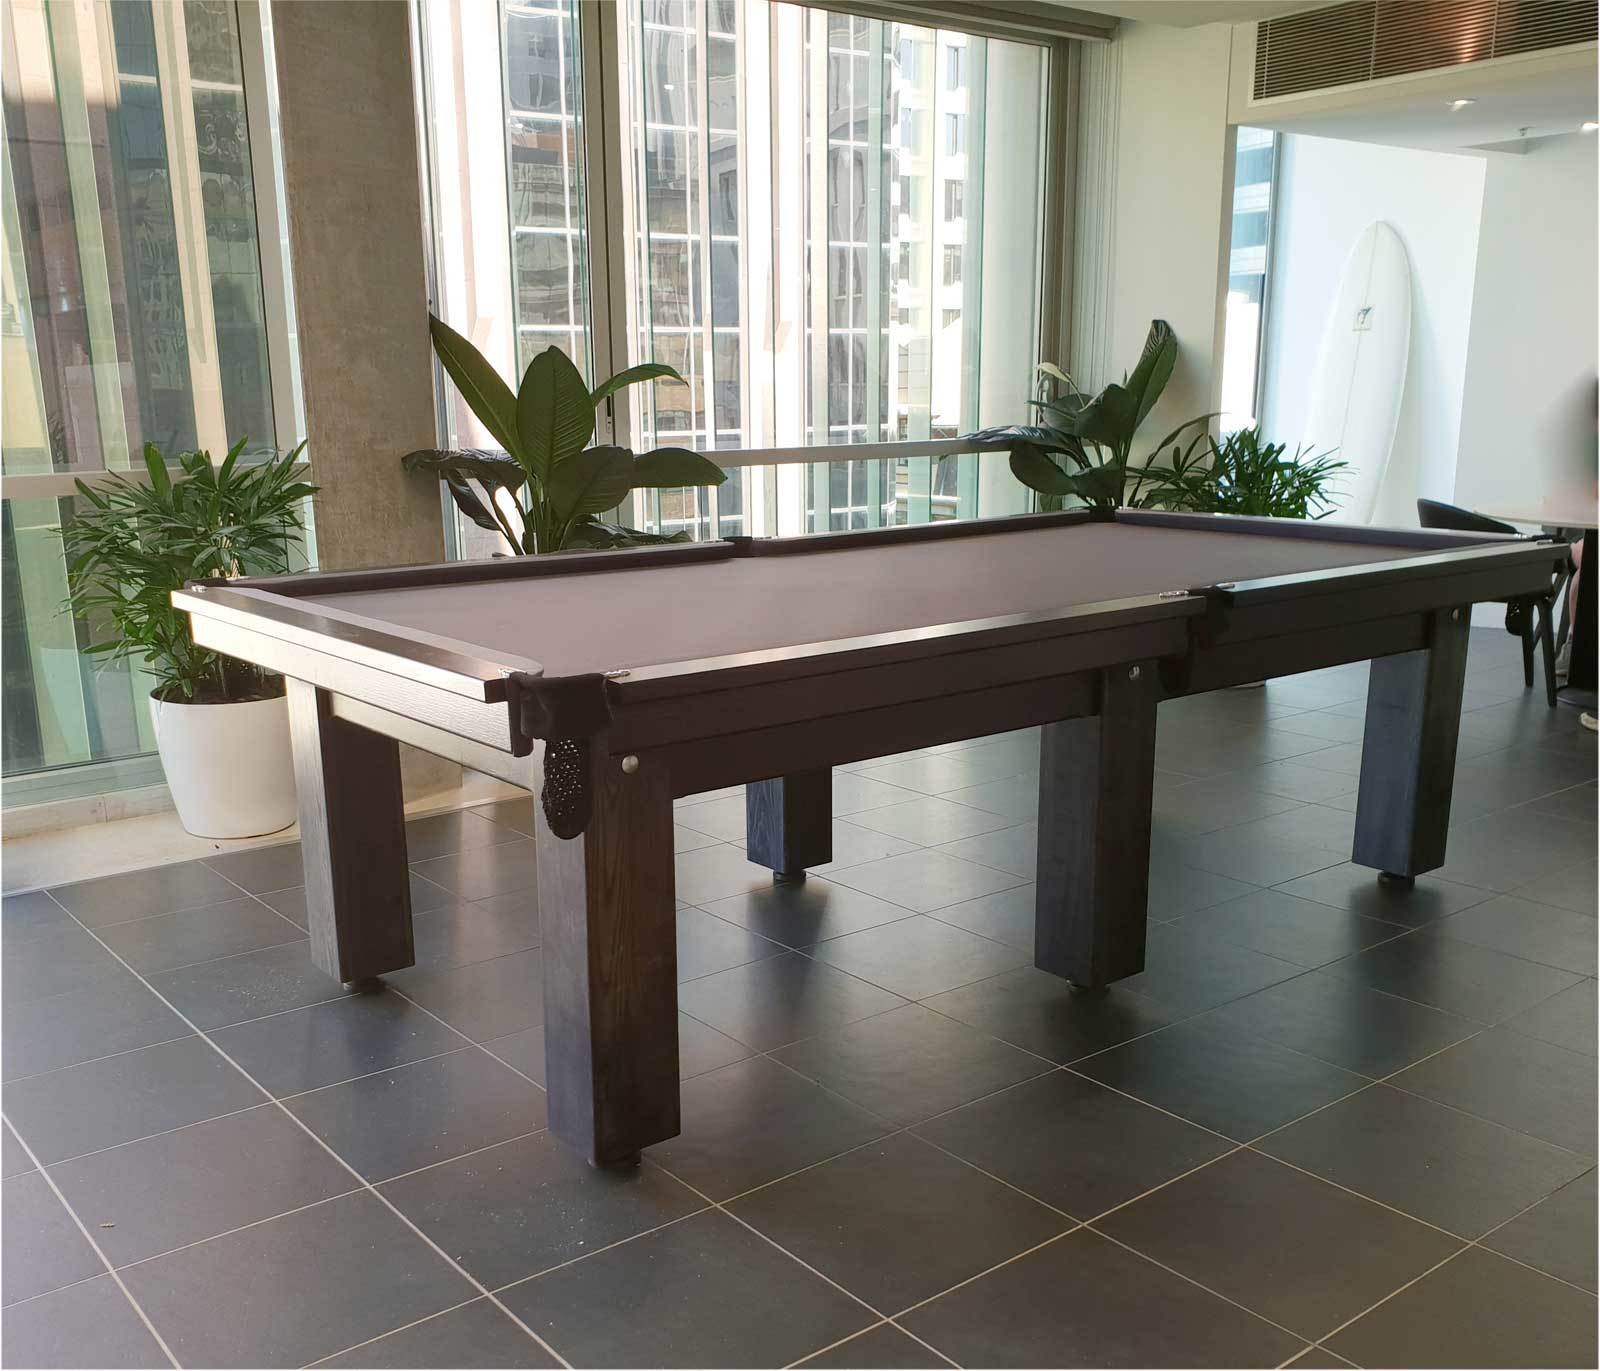 8 Foot Slate Premier Standard Pool Table